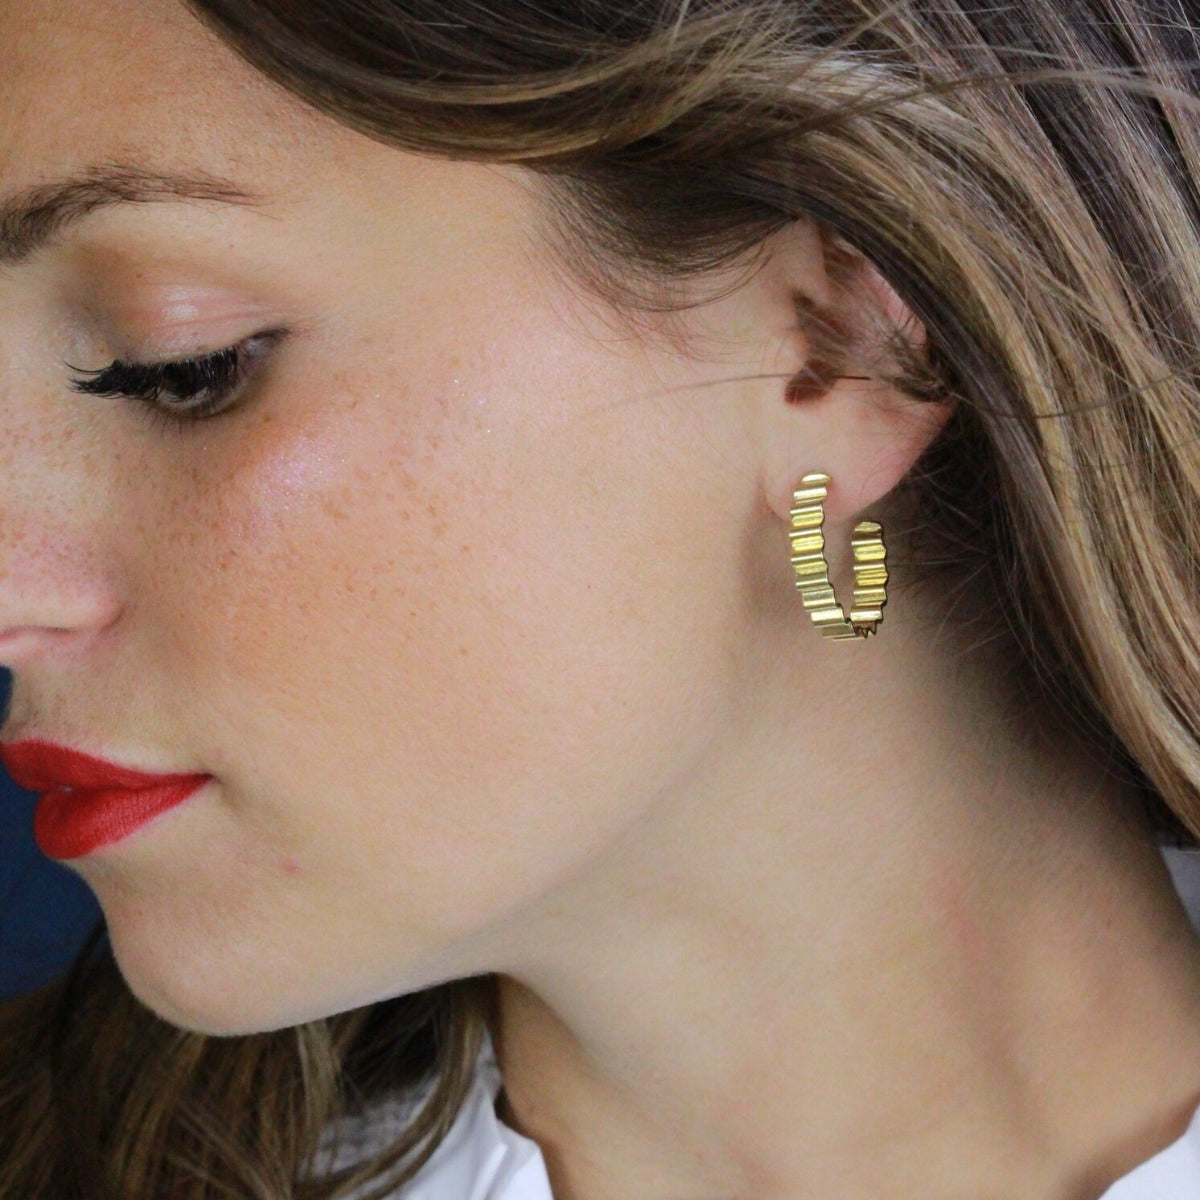 CLASSIC ONDULÉE HOOP EARRINGS - 18CT GOLD VERMEIL - BY OLIVIA TAYLOR Jewellery OLIVIA TAYLOR